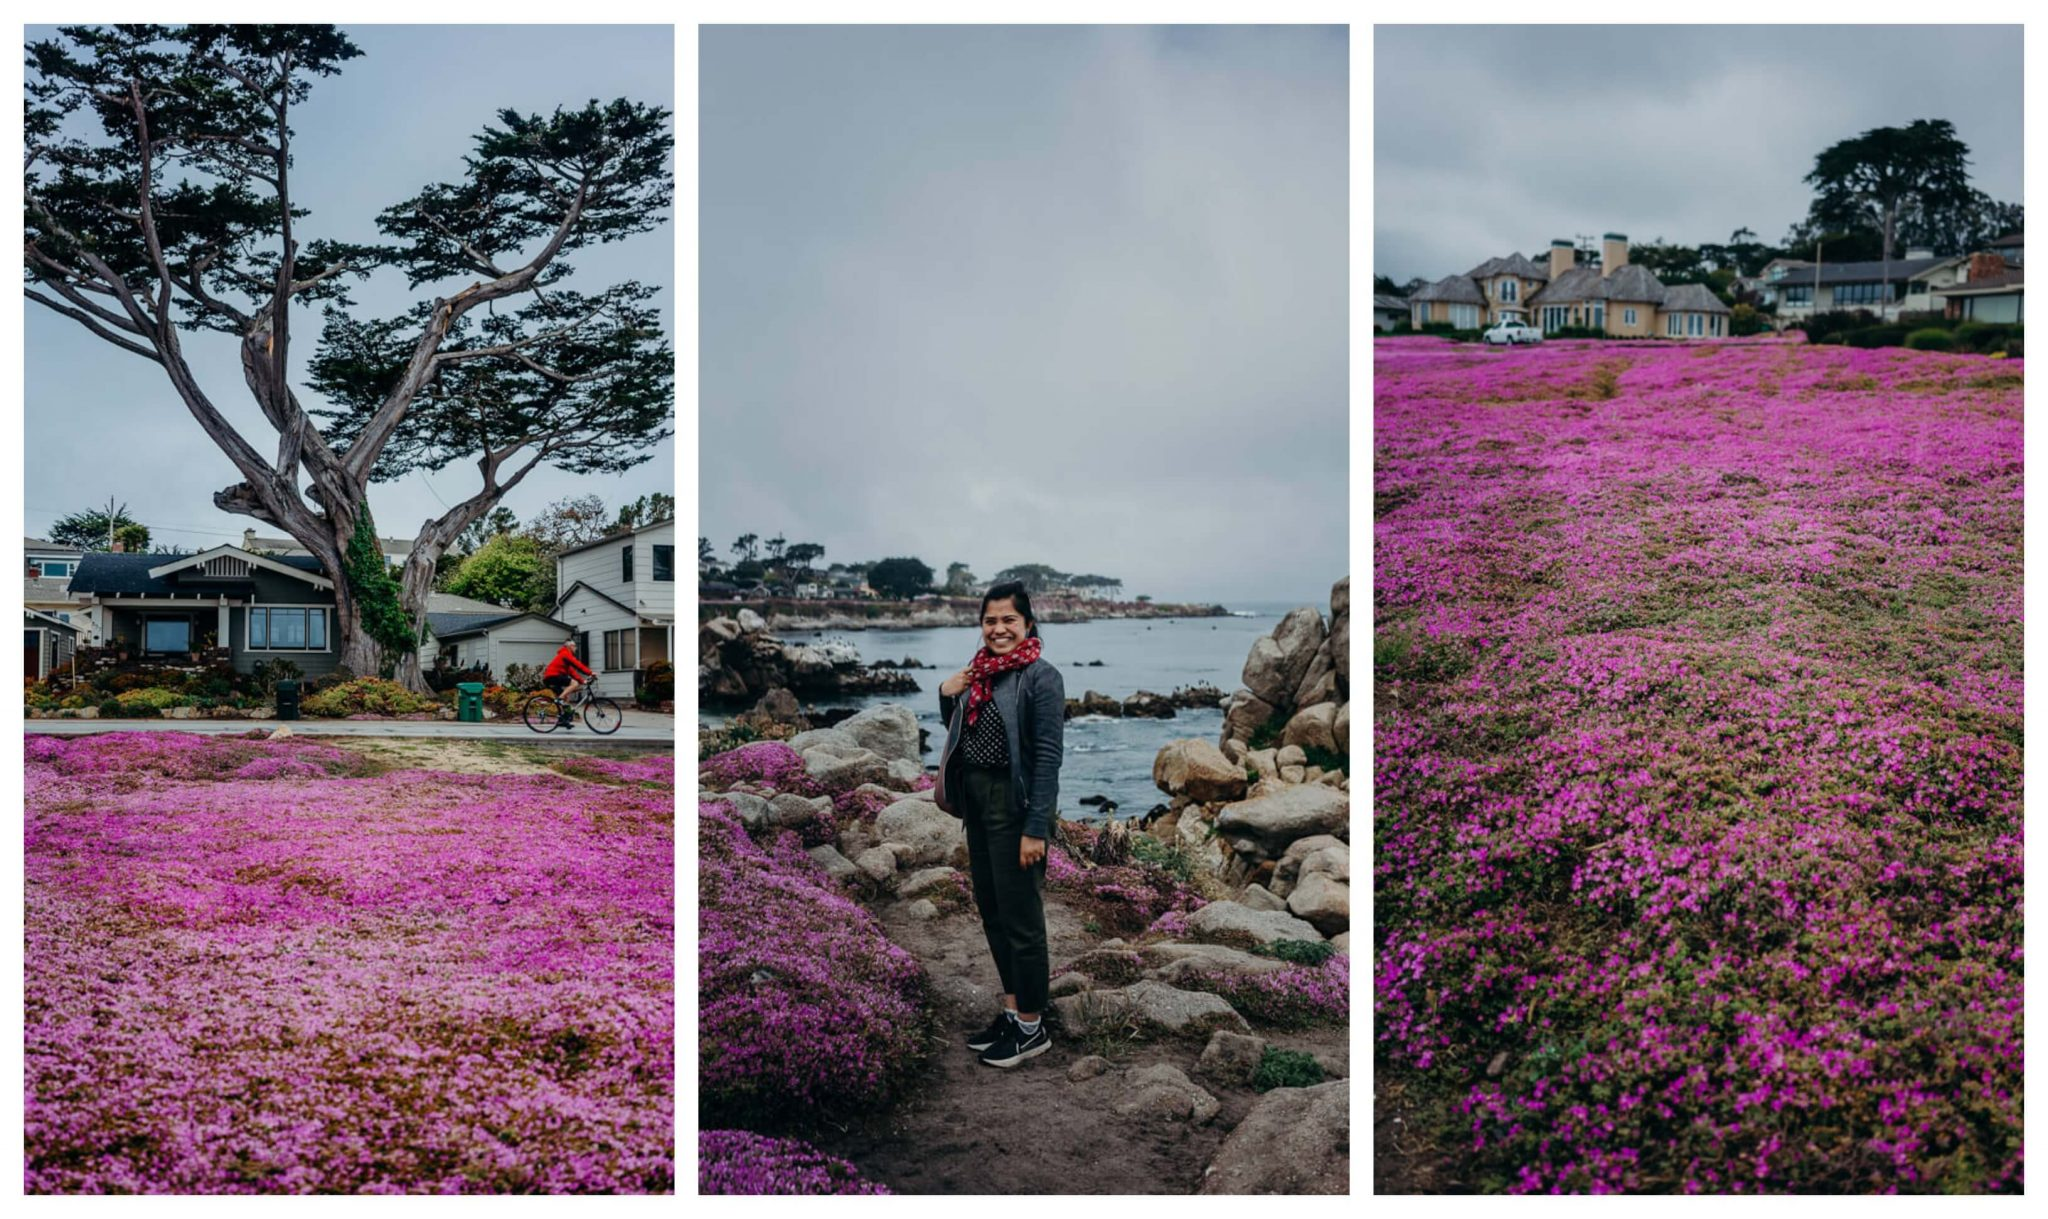 Ocean View Drive in Pacific Grove